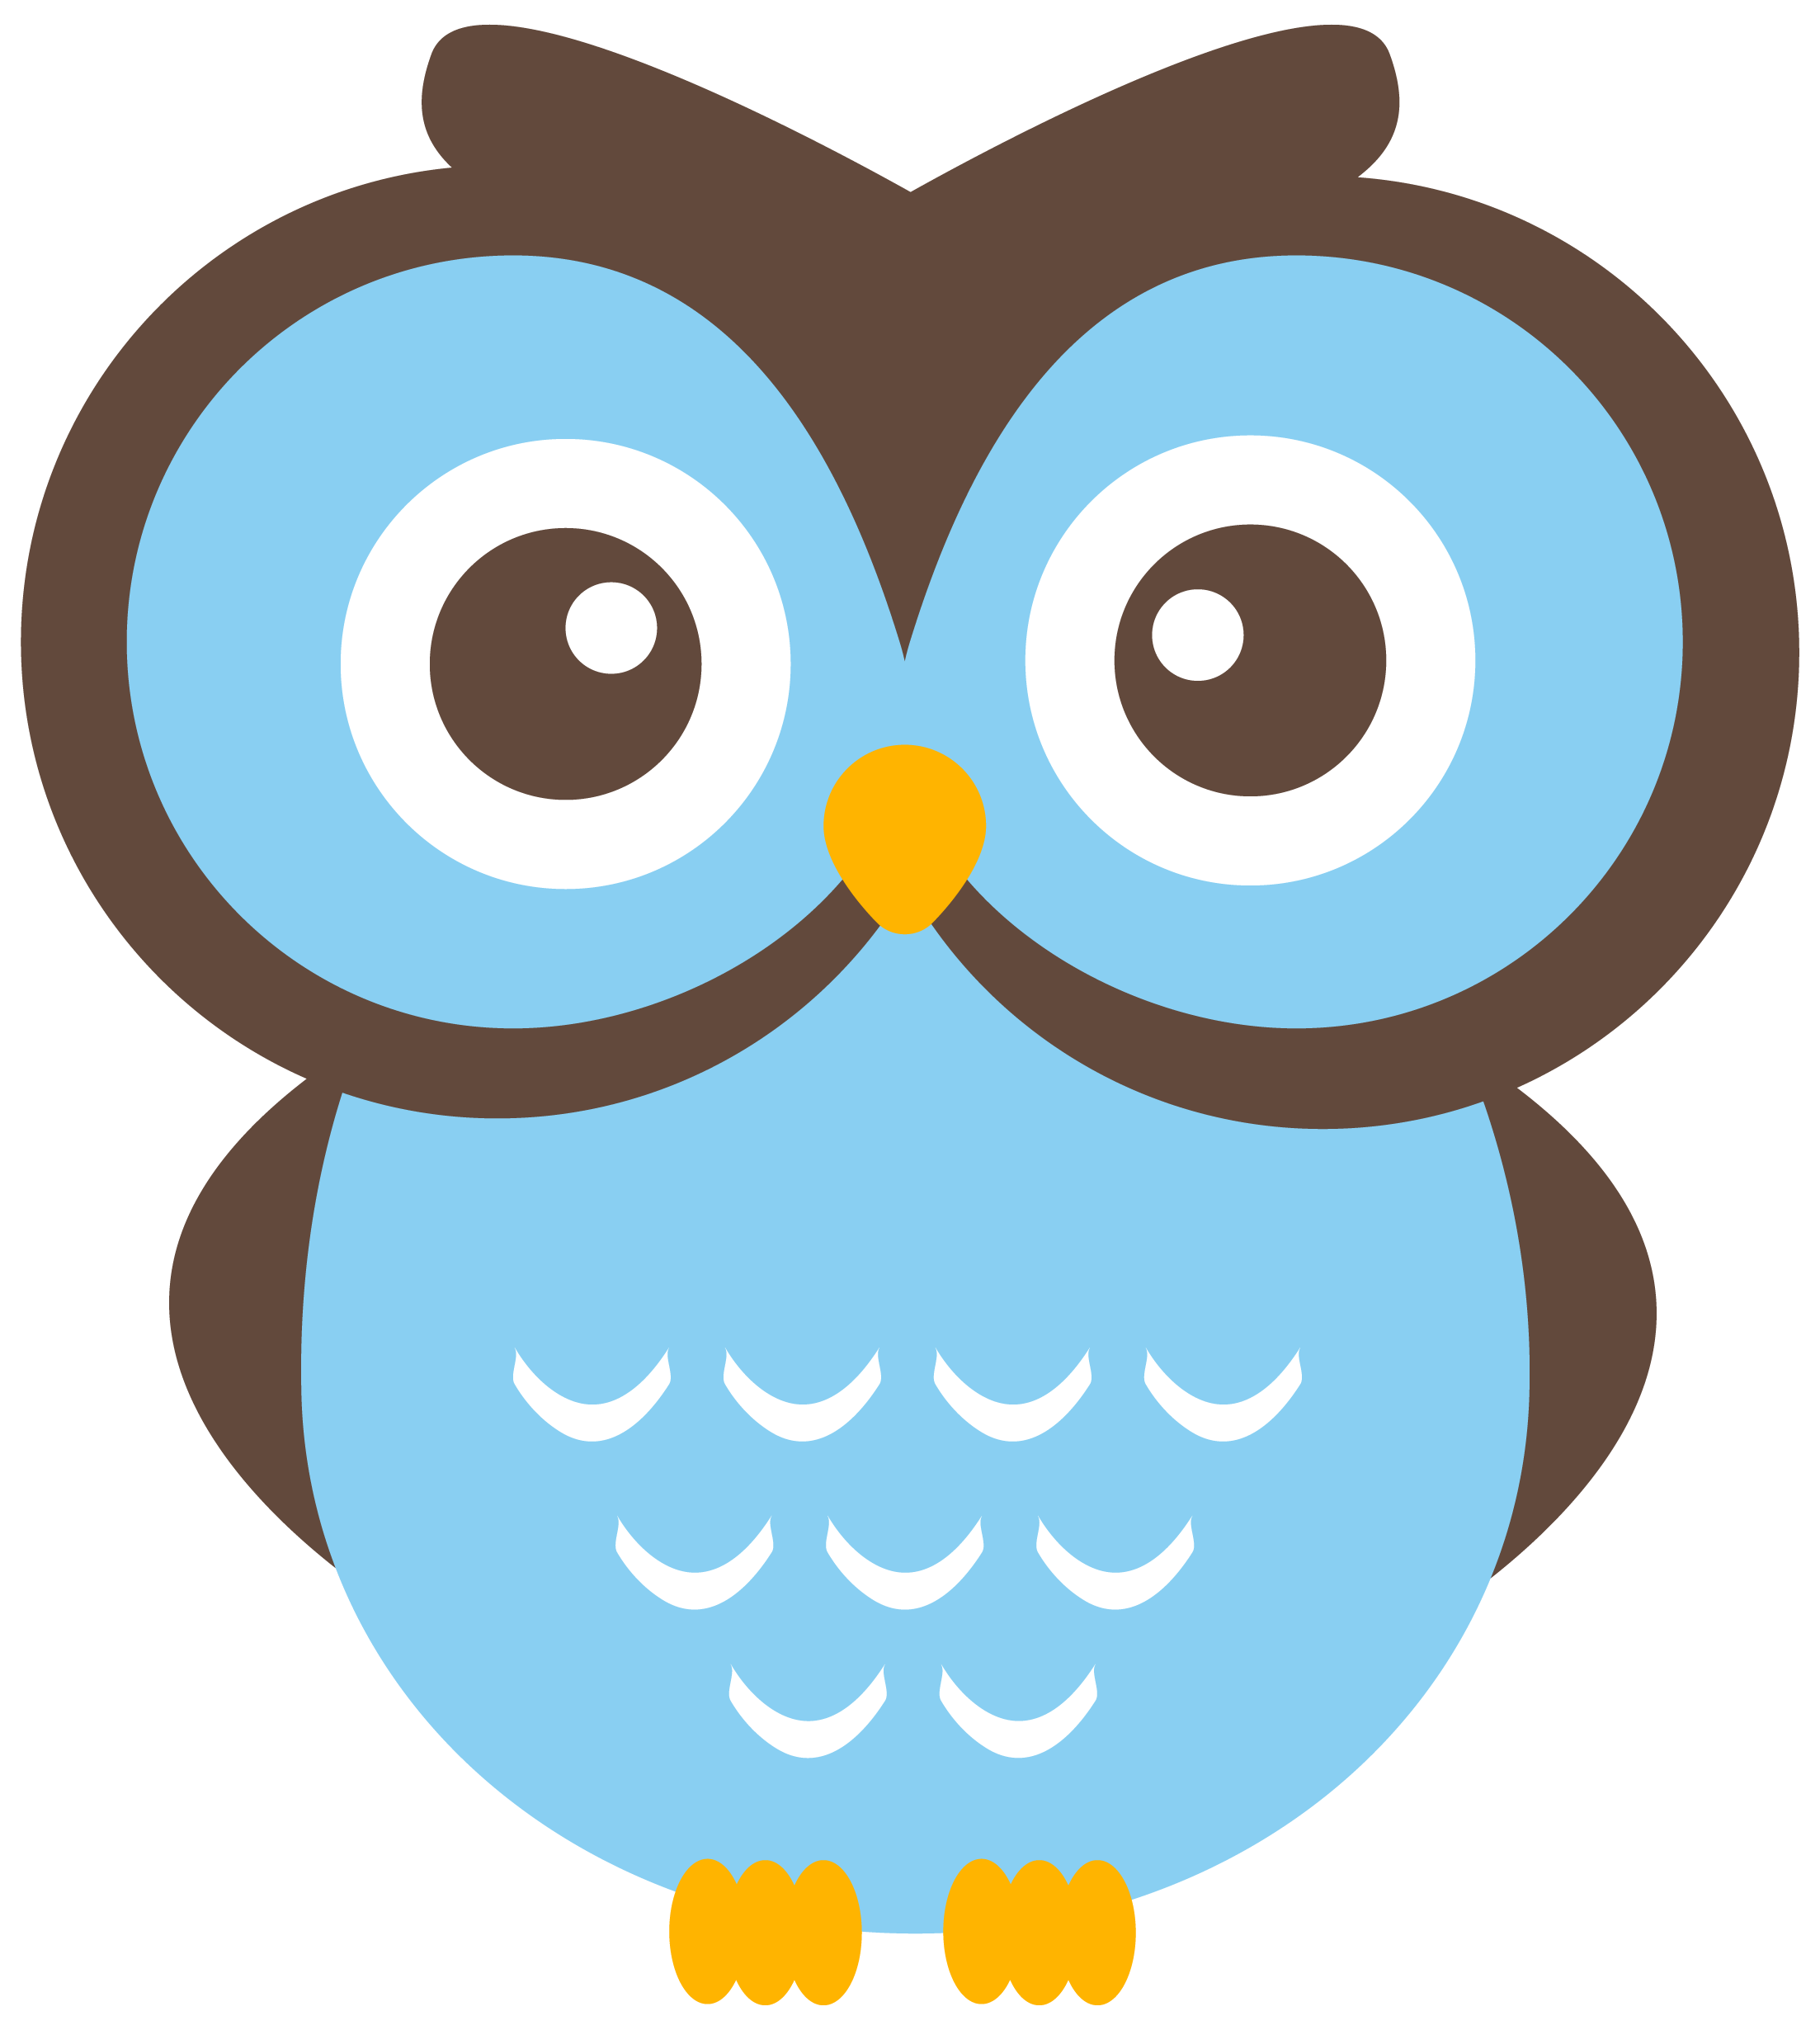 Free Cartoon Owl Clipart Image-Free cartoon owl clipart image-6